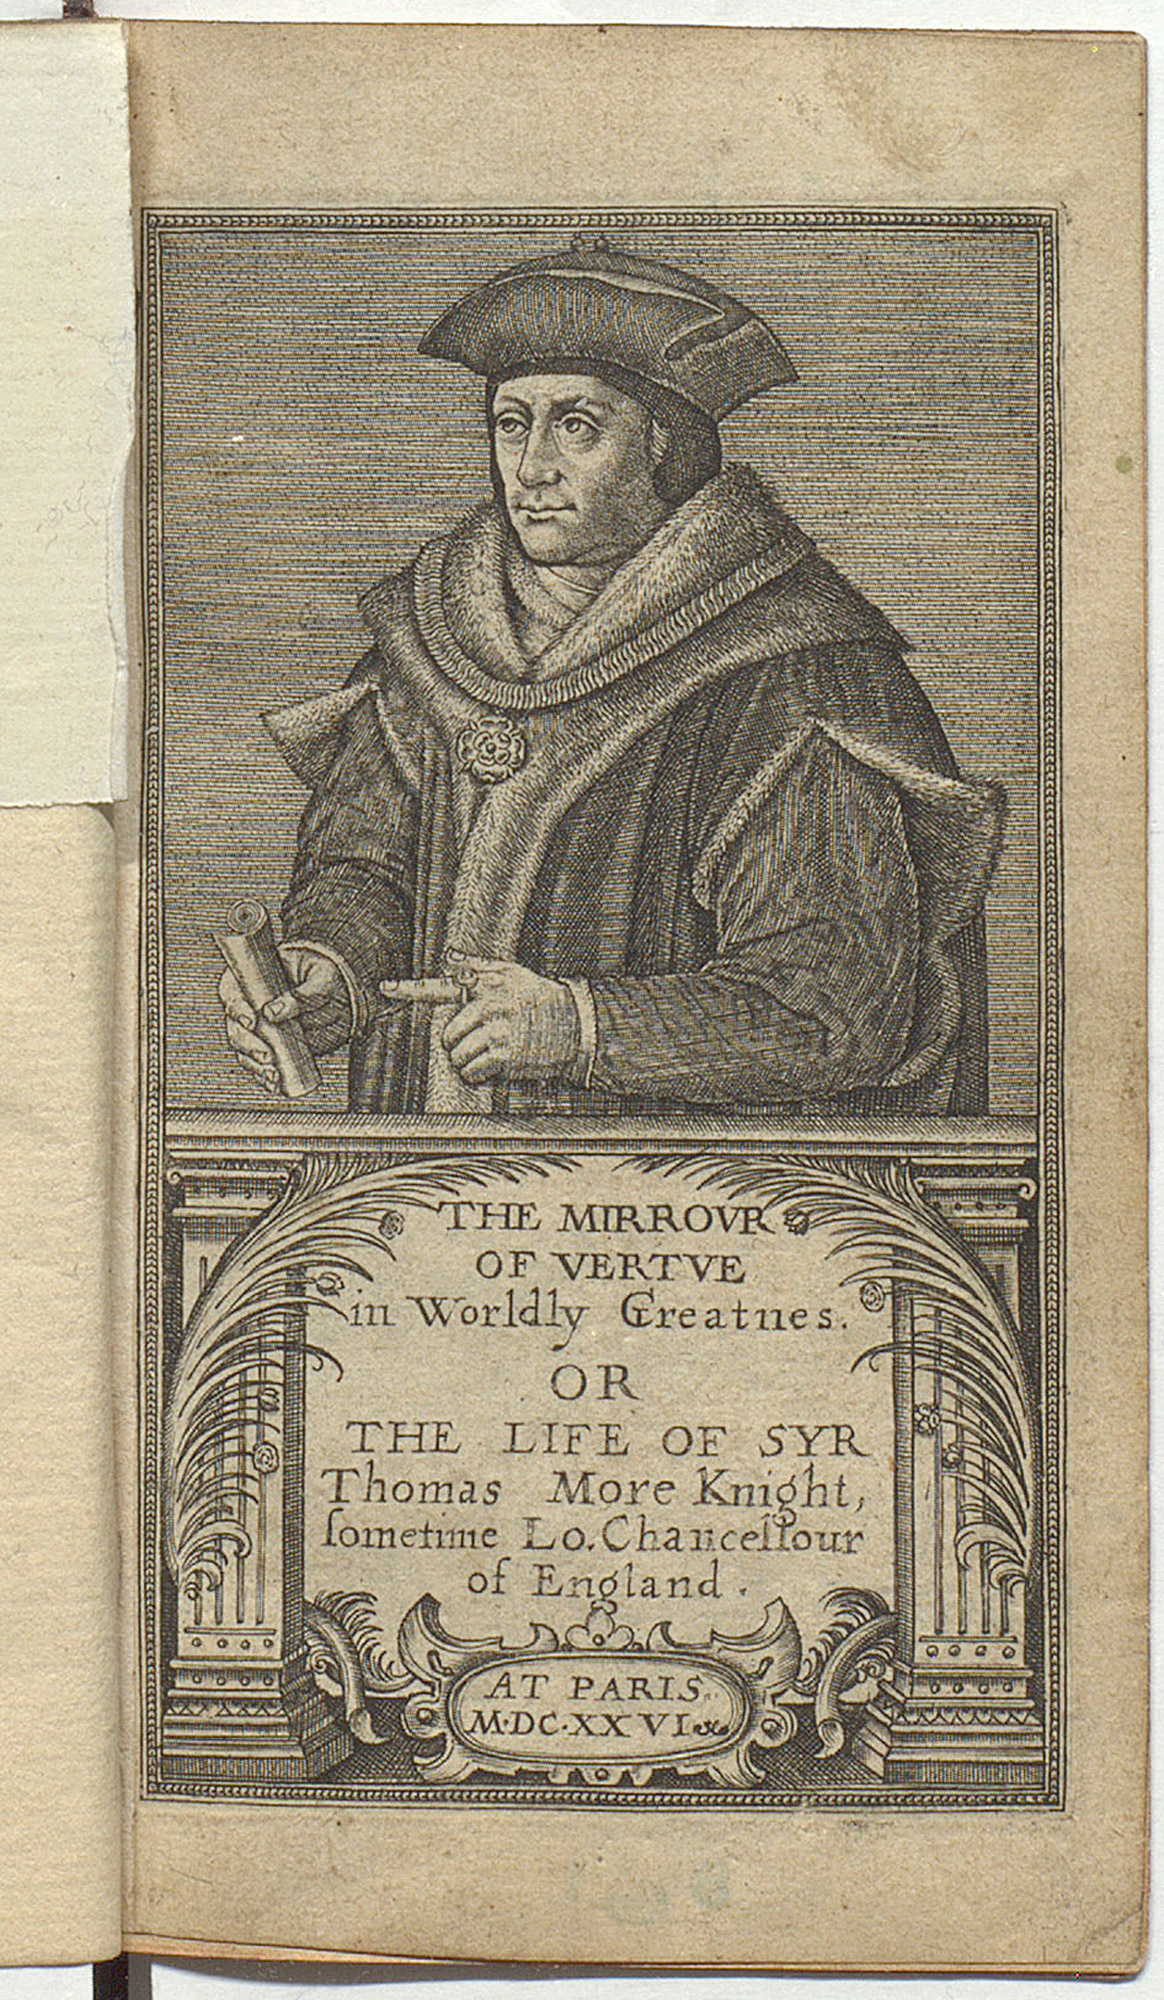 The Mirrour of Vertue in Worldly Greatnes or the life of Sir Thomas More